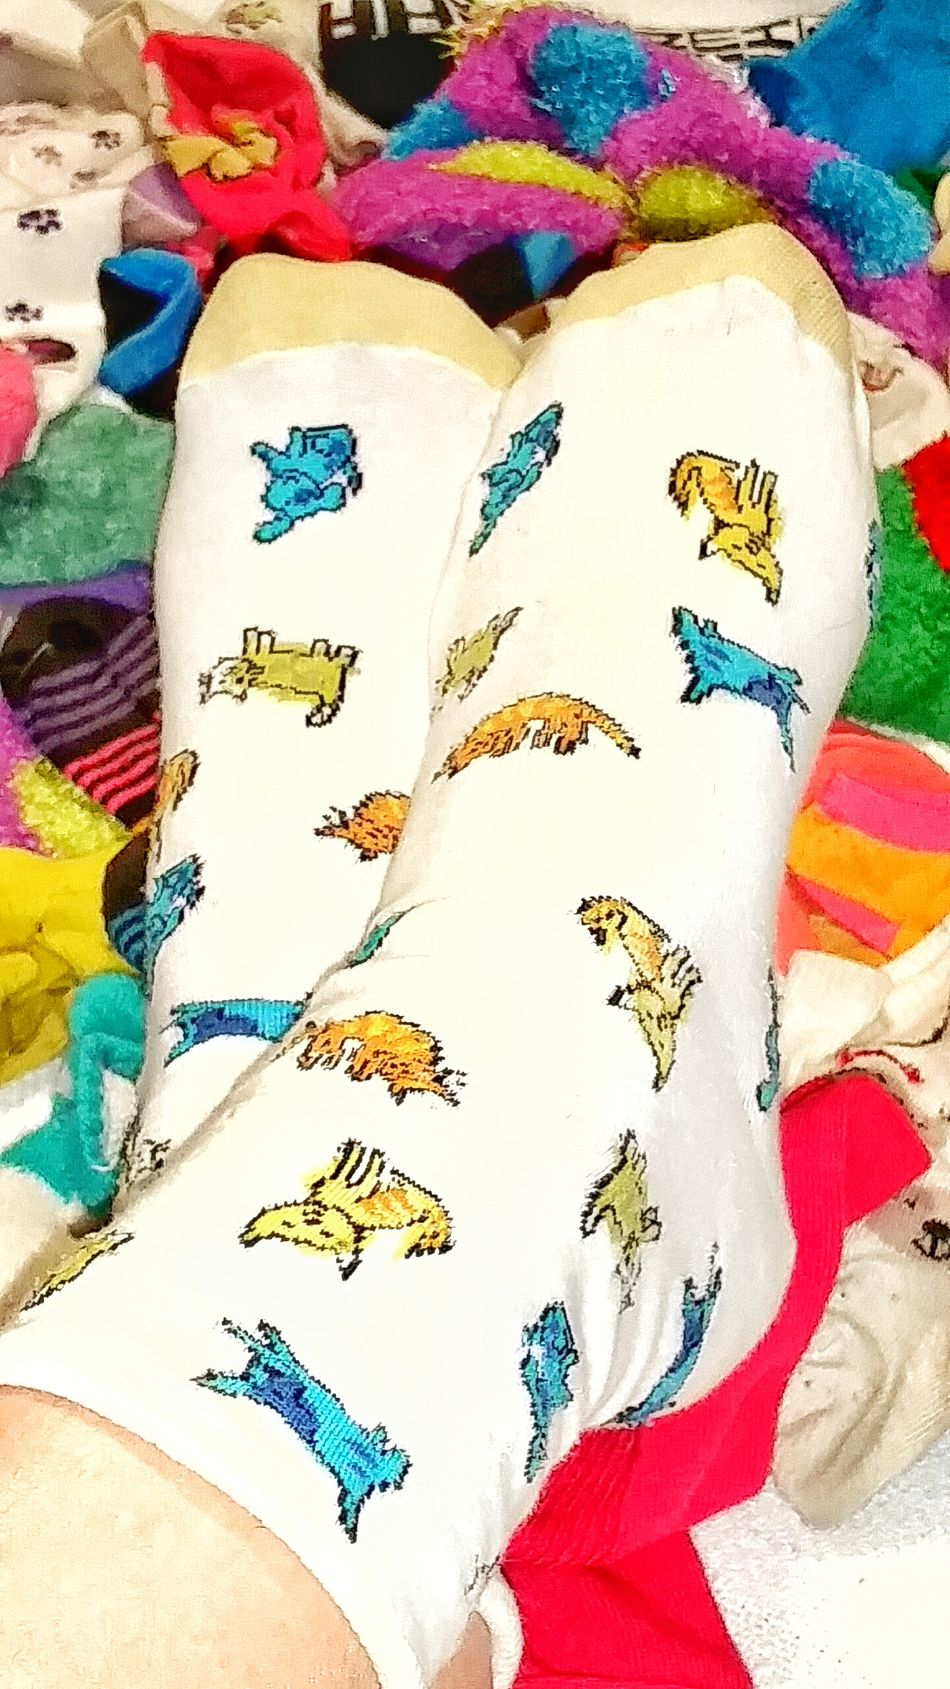 TK Maxx Socksie Colorful Socks Clothing Long Socks Multicolors  Pattern Cute Socks Texture Comfortable Cozy Bright Colors Variaty Foot Abundance Socks Design Funny Socks Multi Colored Large Group Of Objects Soft Texture Colorful Fuzzy Dog Socks Close-up Dotted